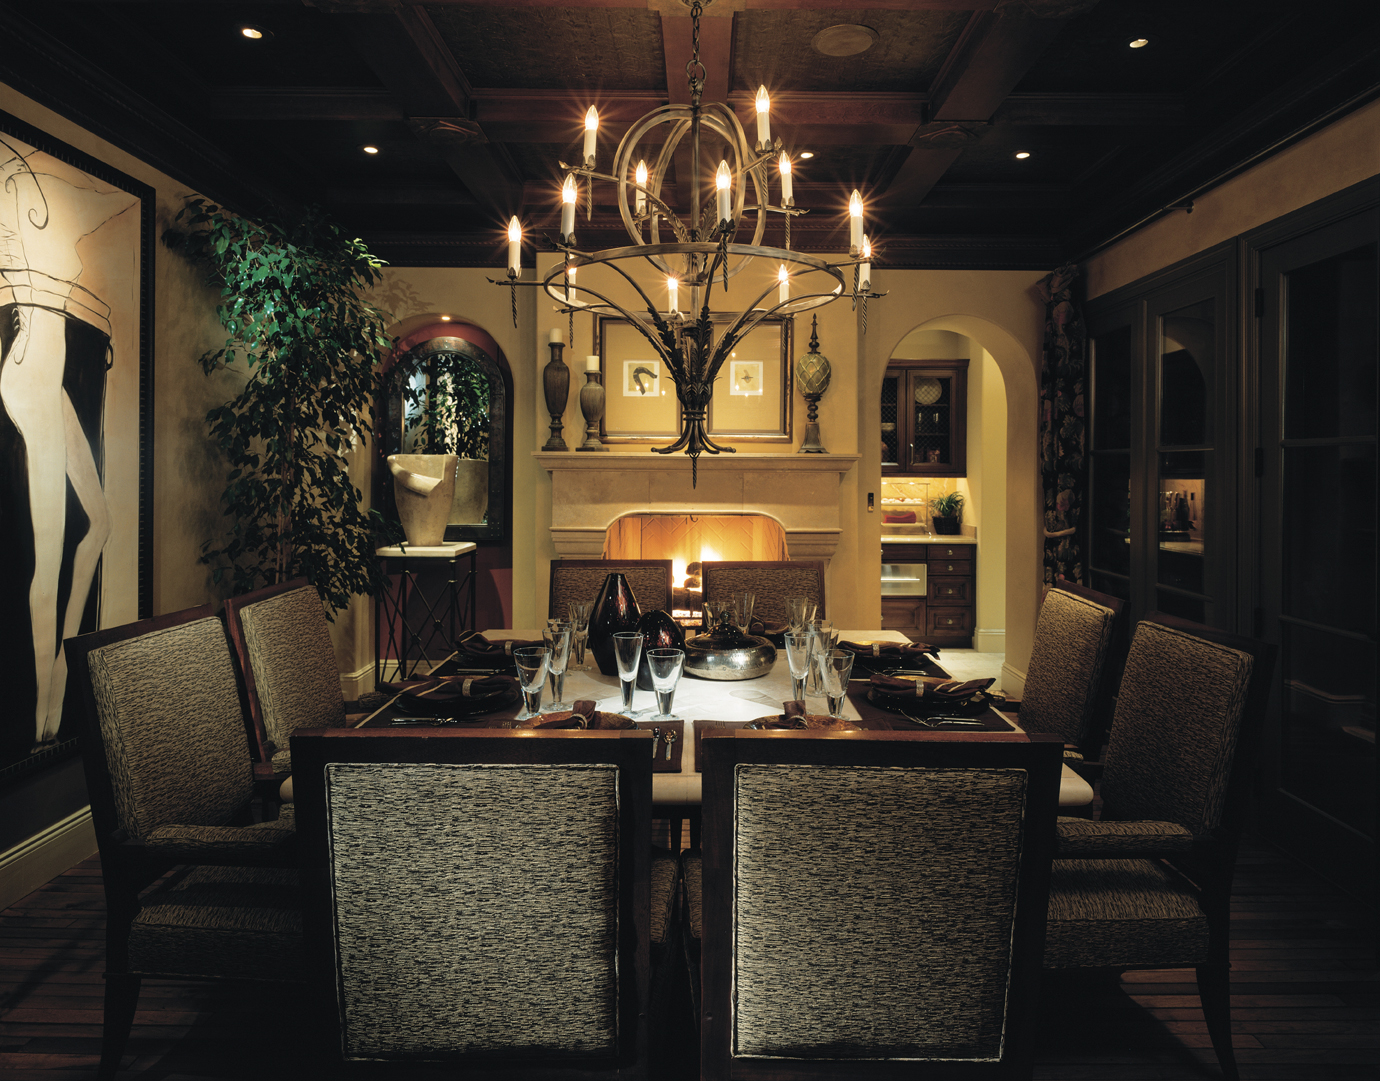 Featured Image of Dining Room Lighting Design For Romantic Nuance